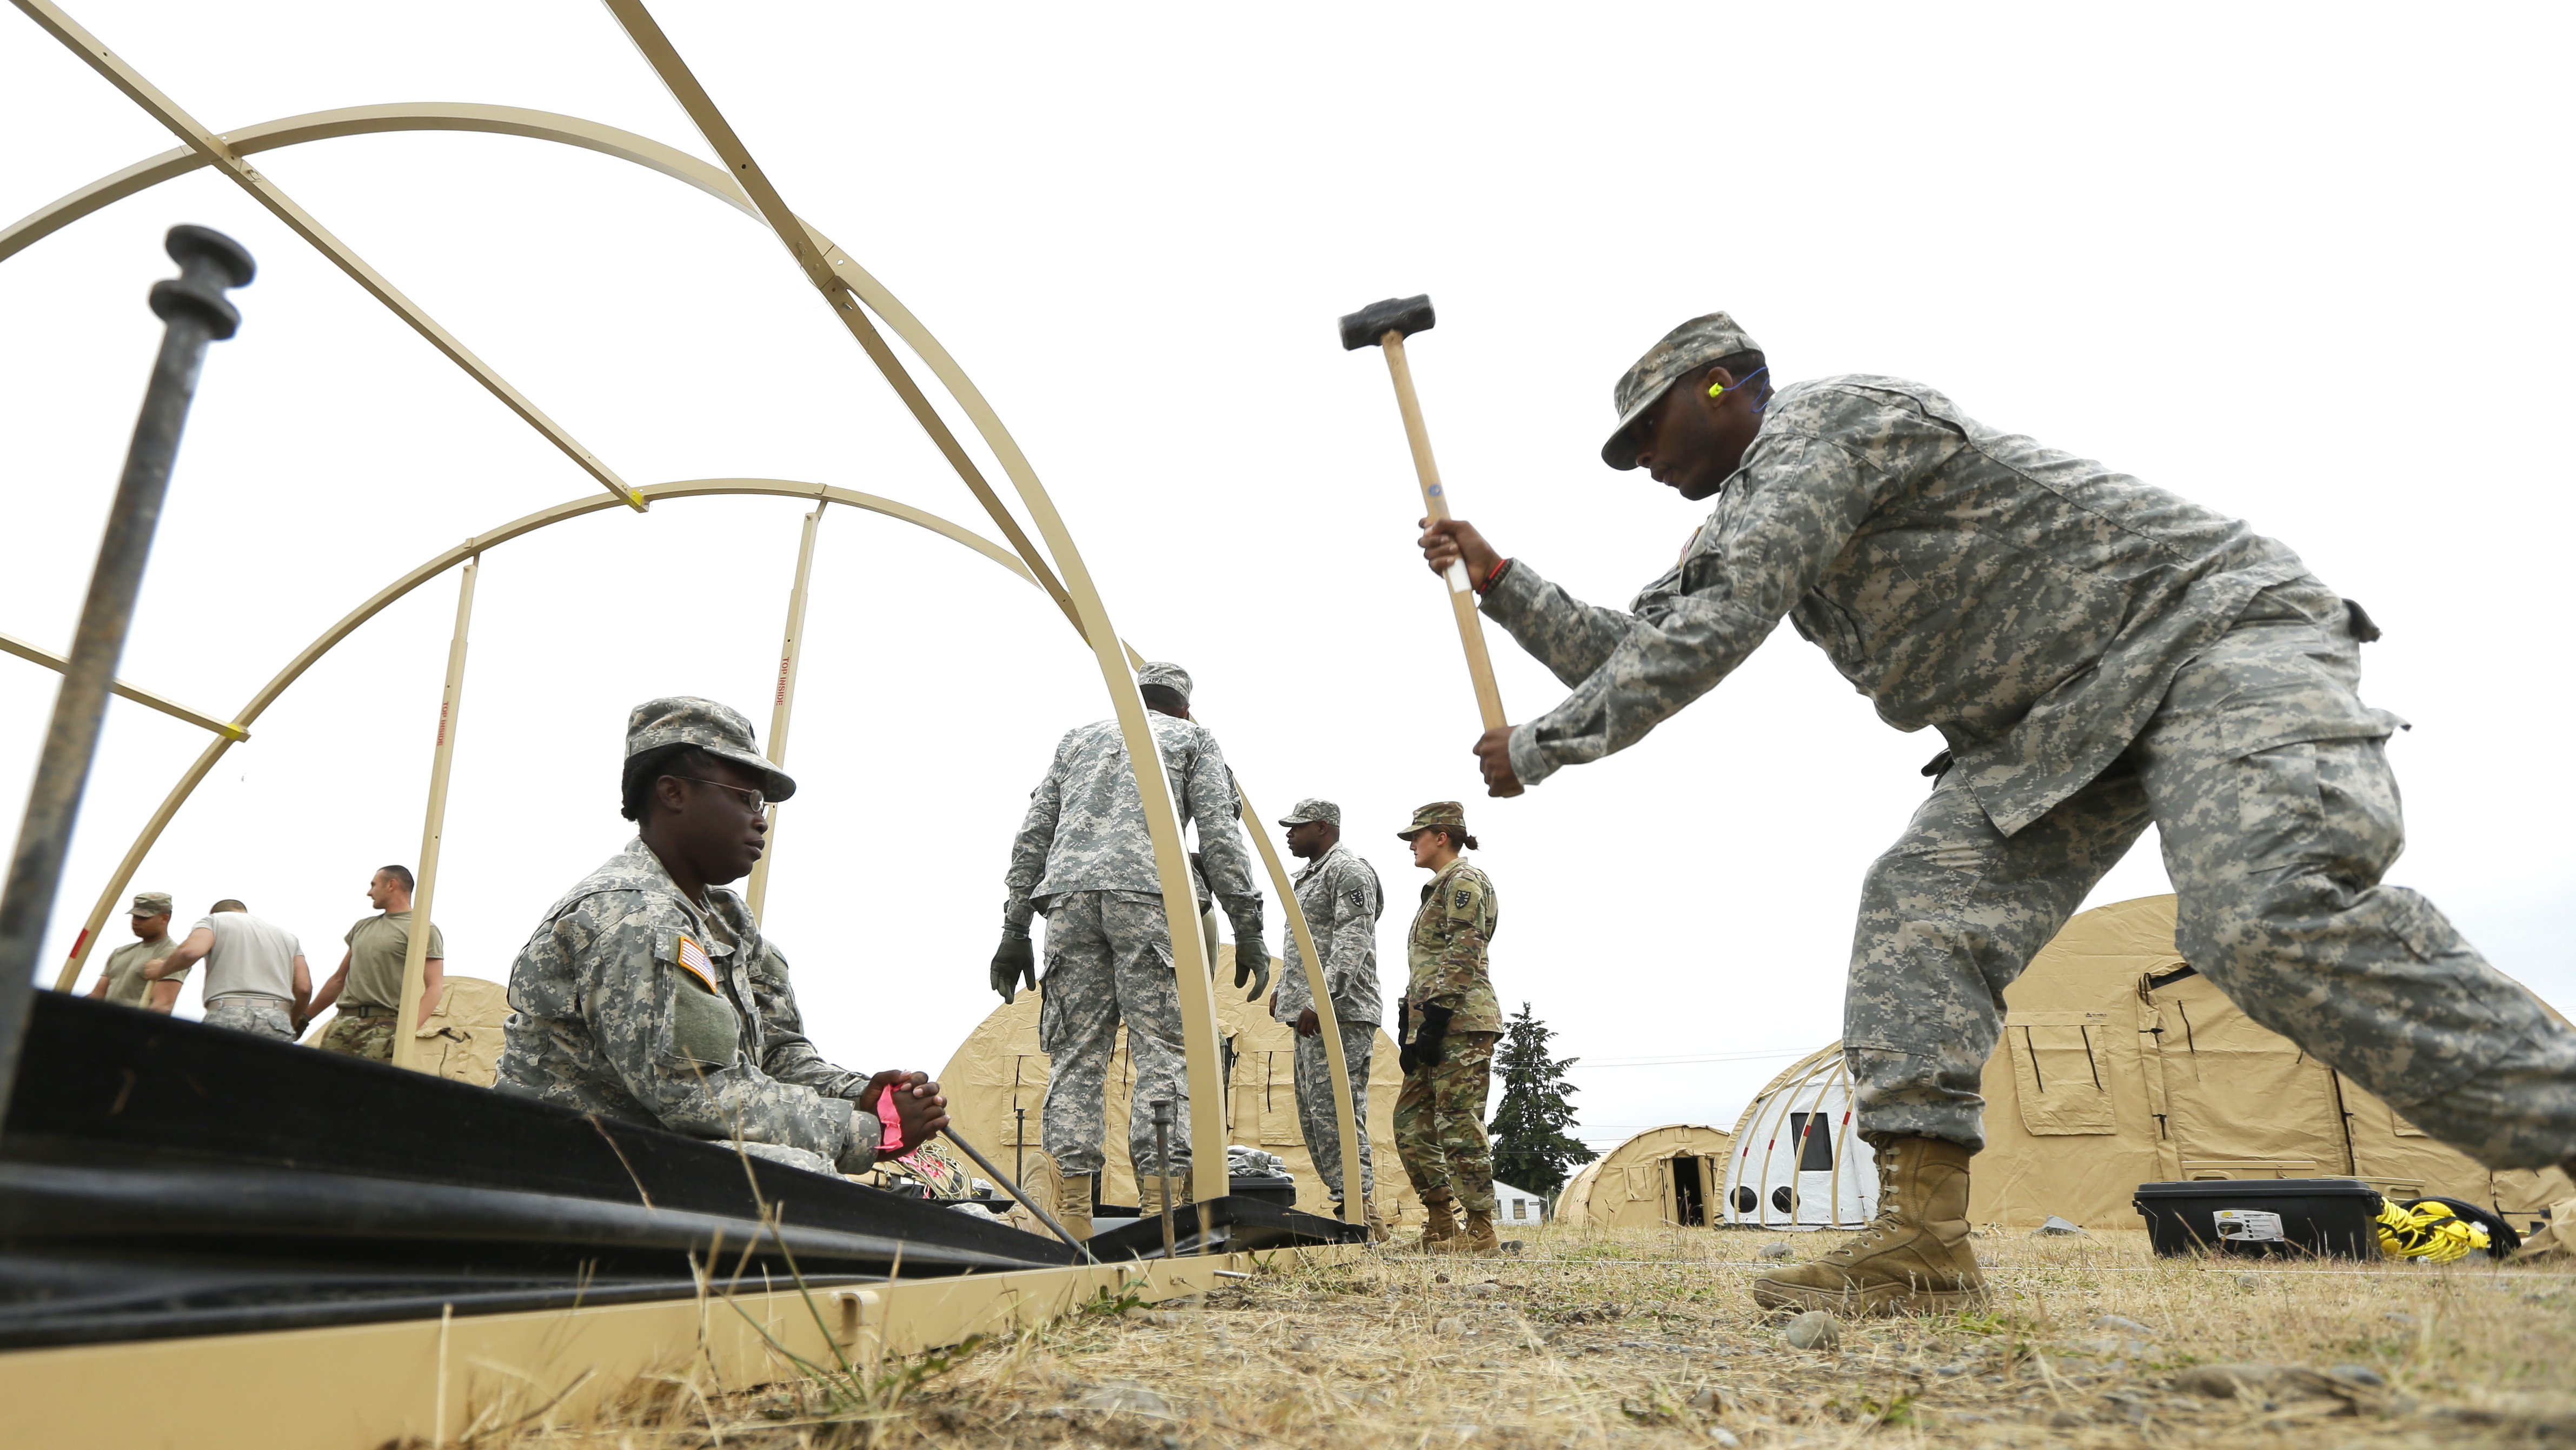 Filming could mean noise this week at Fort Eustis